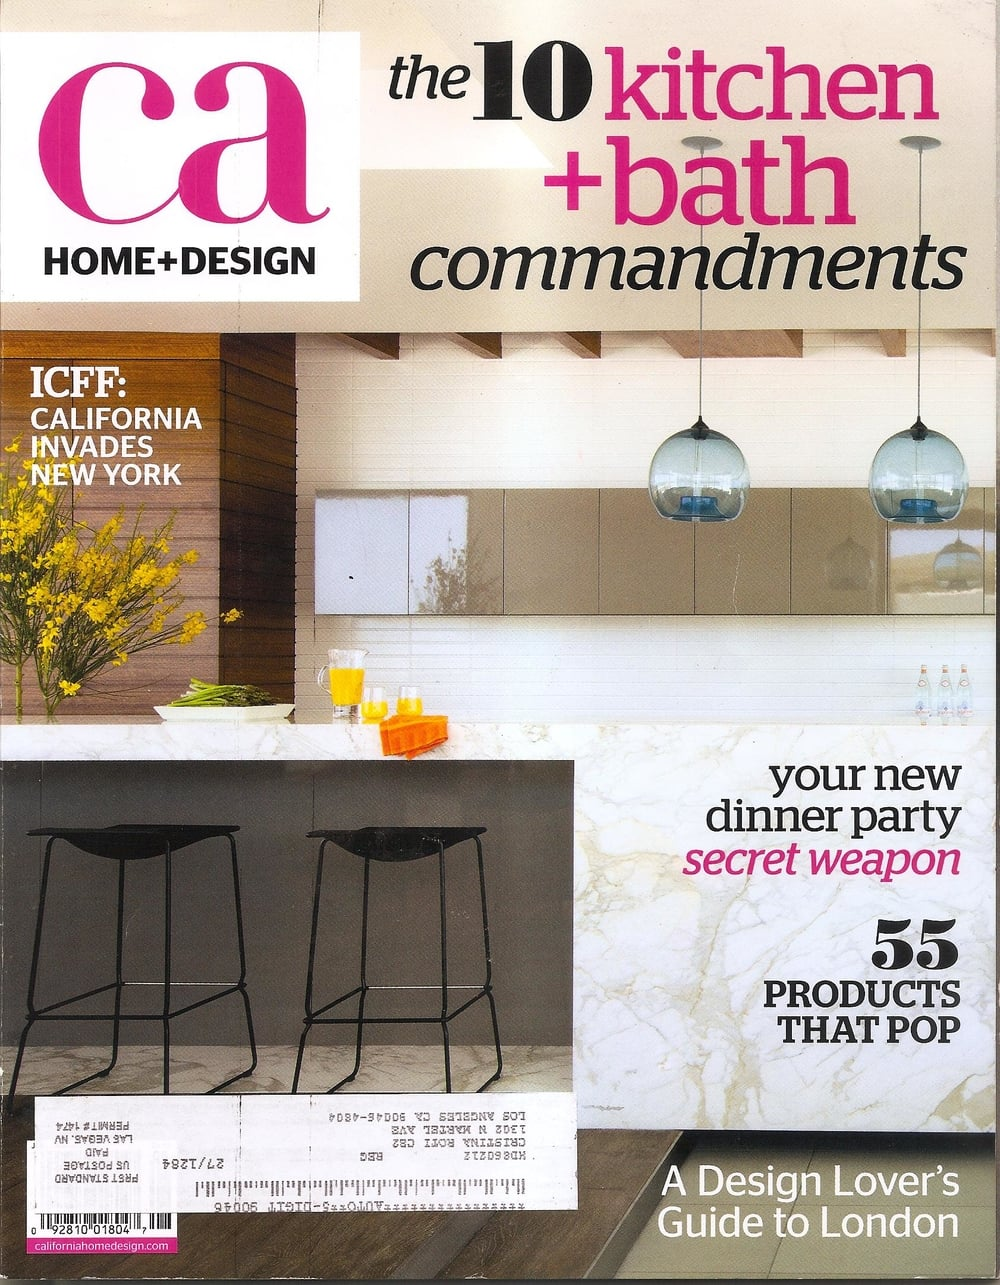 cahomedesign_cover.jpg